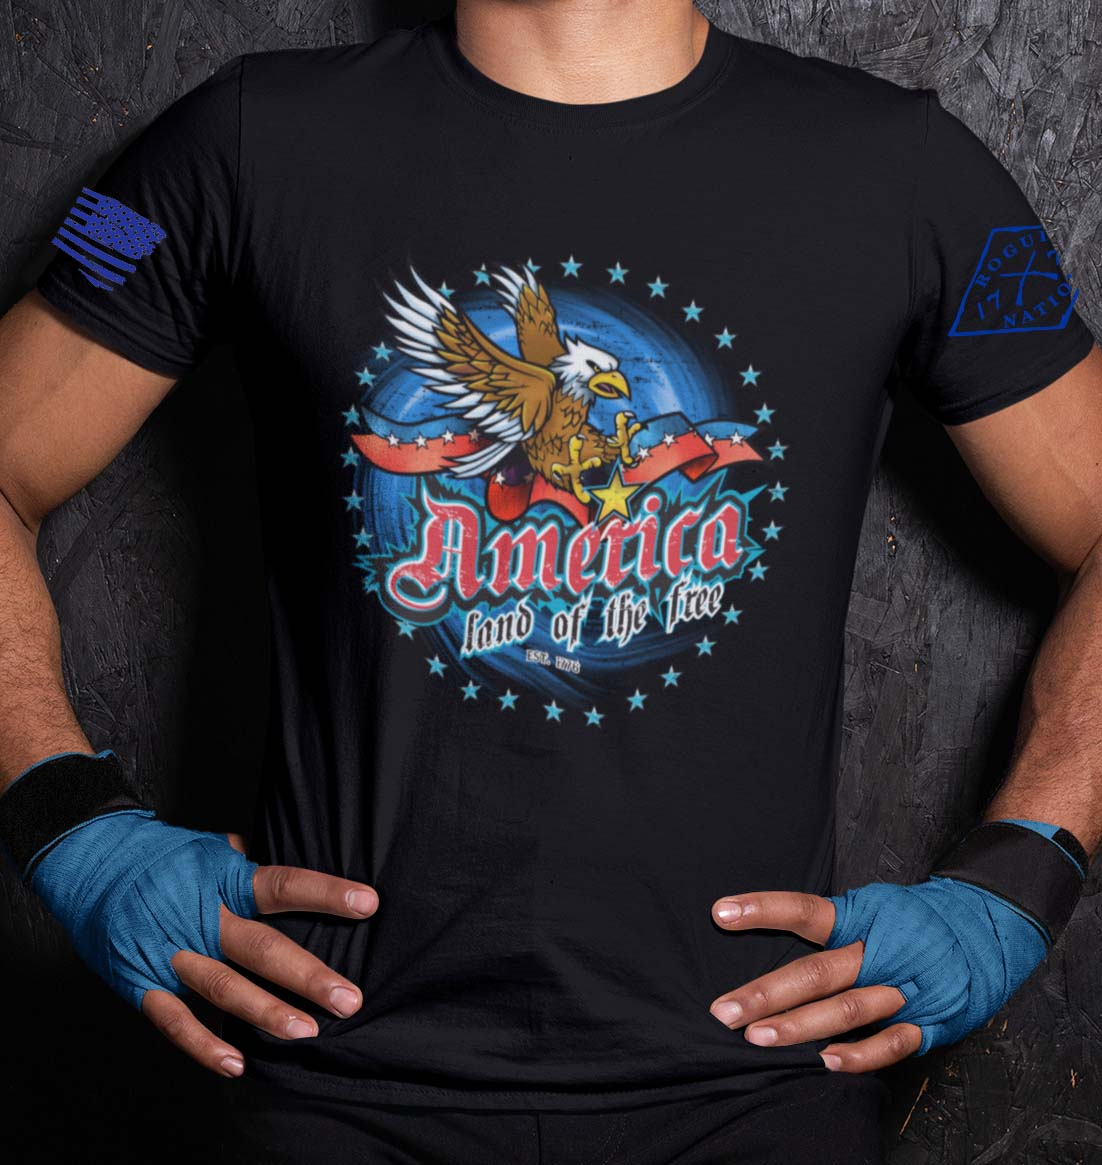 America Land of the Free Tshirt in Black